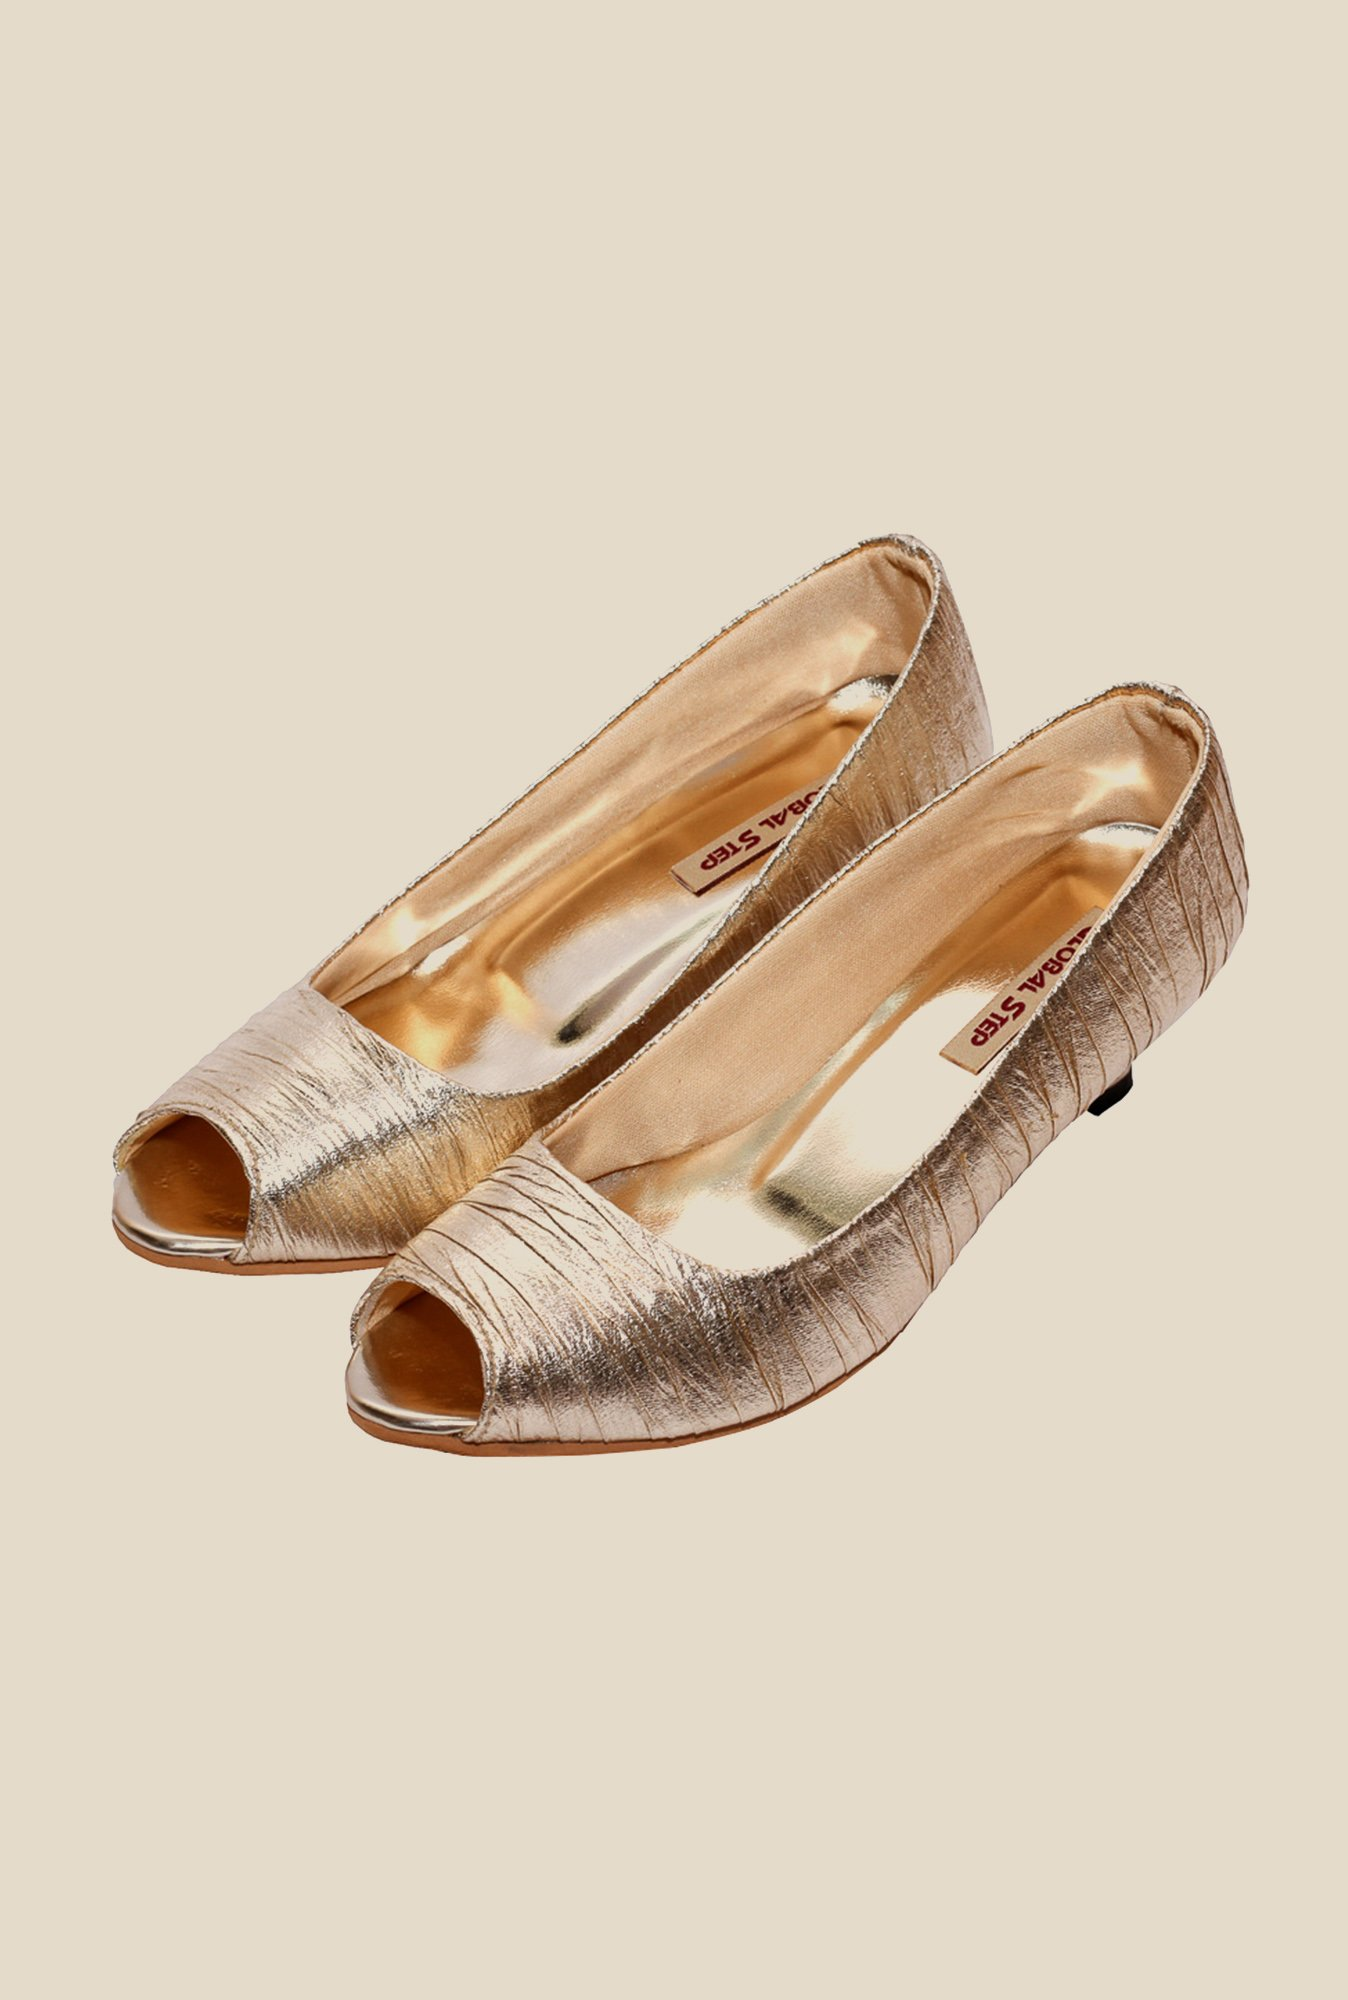 Global Step Golden Peeptoe Shoes